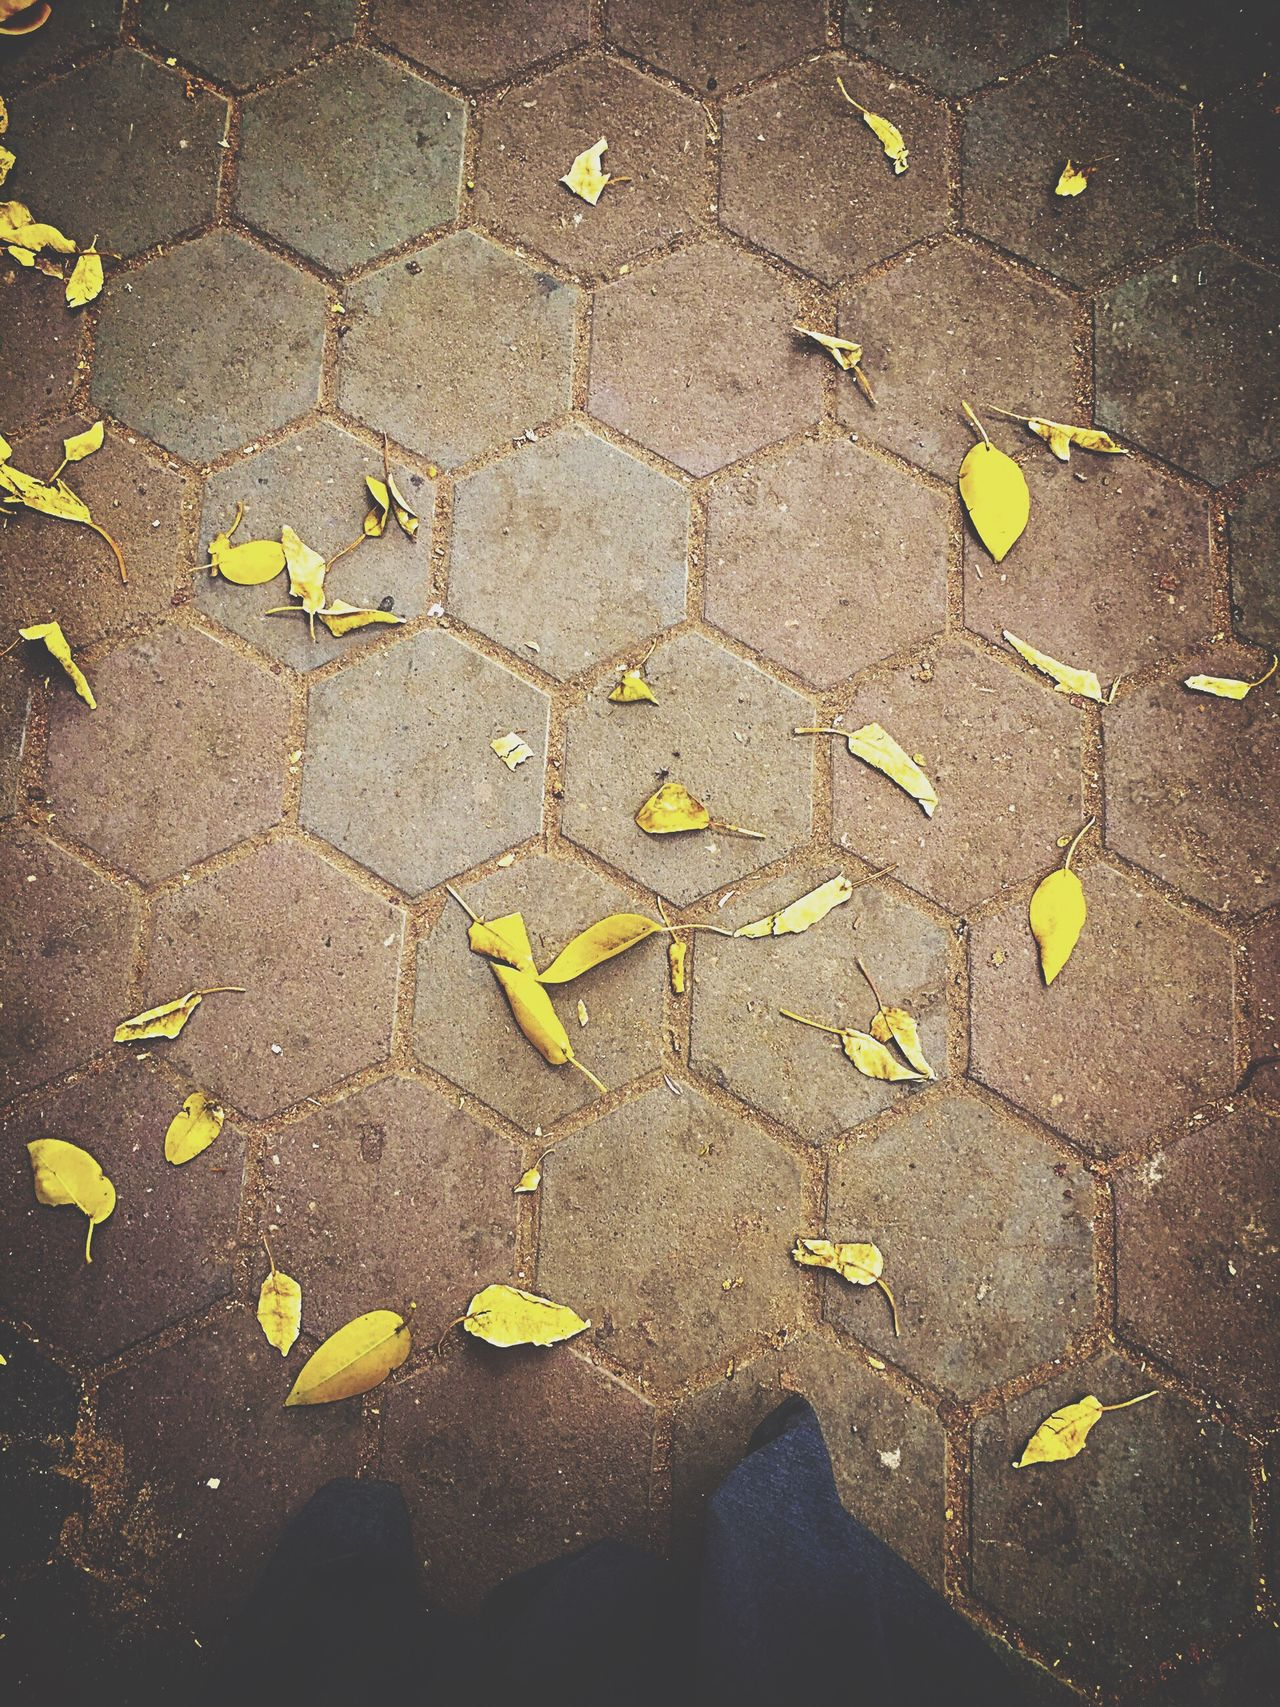 The Street Photographer - 2016 EyeEm Awards EyeEm Best Shots Leaves Leaves_collection Leaves Only Leaves Leaves On The Ground Leaves Falling Leavesfalling Leaves Are Falling Leaves 🍁 Leaf EyeEm EyeEm Nature Lover EyeEm Gallery EyeEm Best Edits EyeEmBestPics EyeEm Best Shots - Nature Eyeemphotography EyeEmbestshots EyeEmBestEdits EyeEm The Best Shots Nature Nature_collection Leaves🌿 Leaves